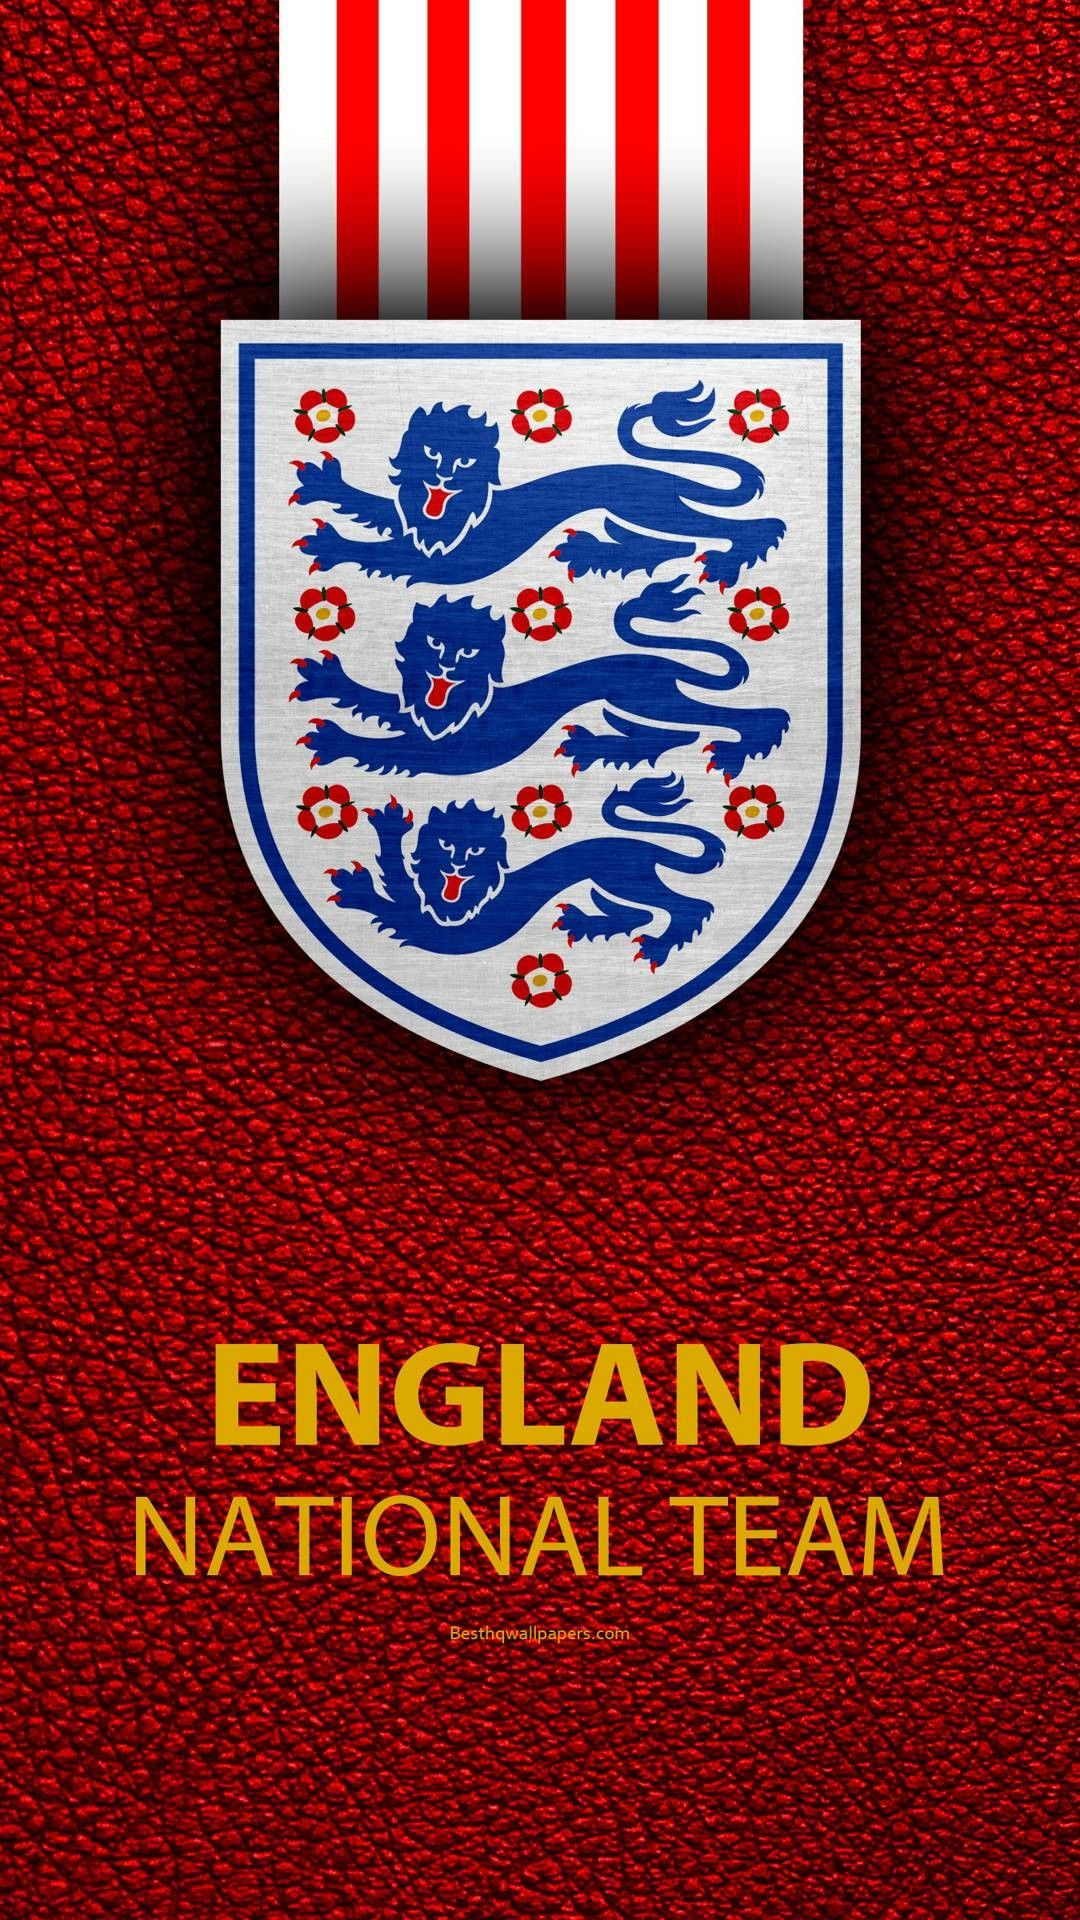 England Football Team Wallpaper England Football Team England Football England National Team